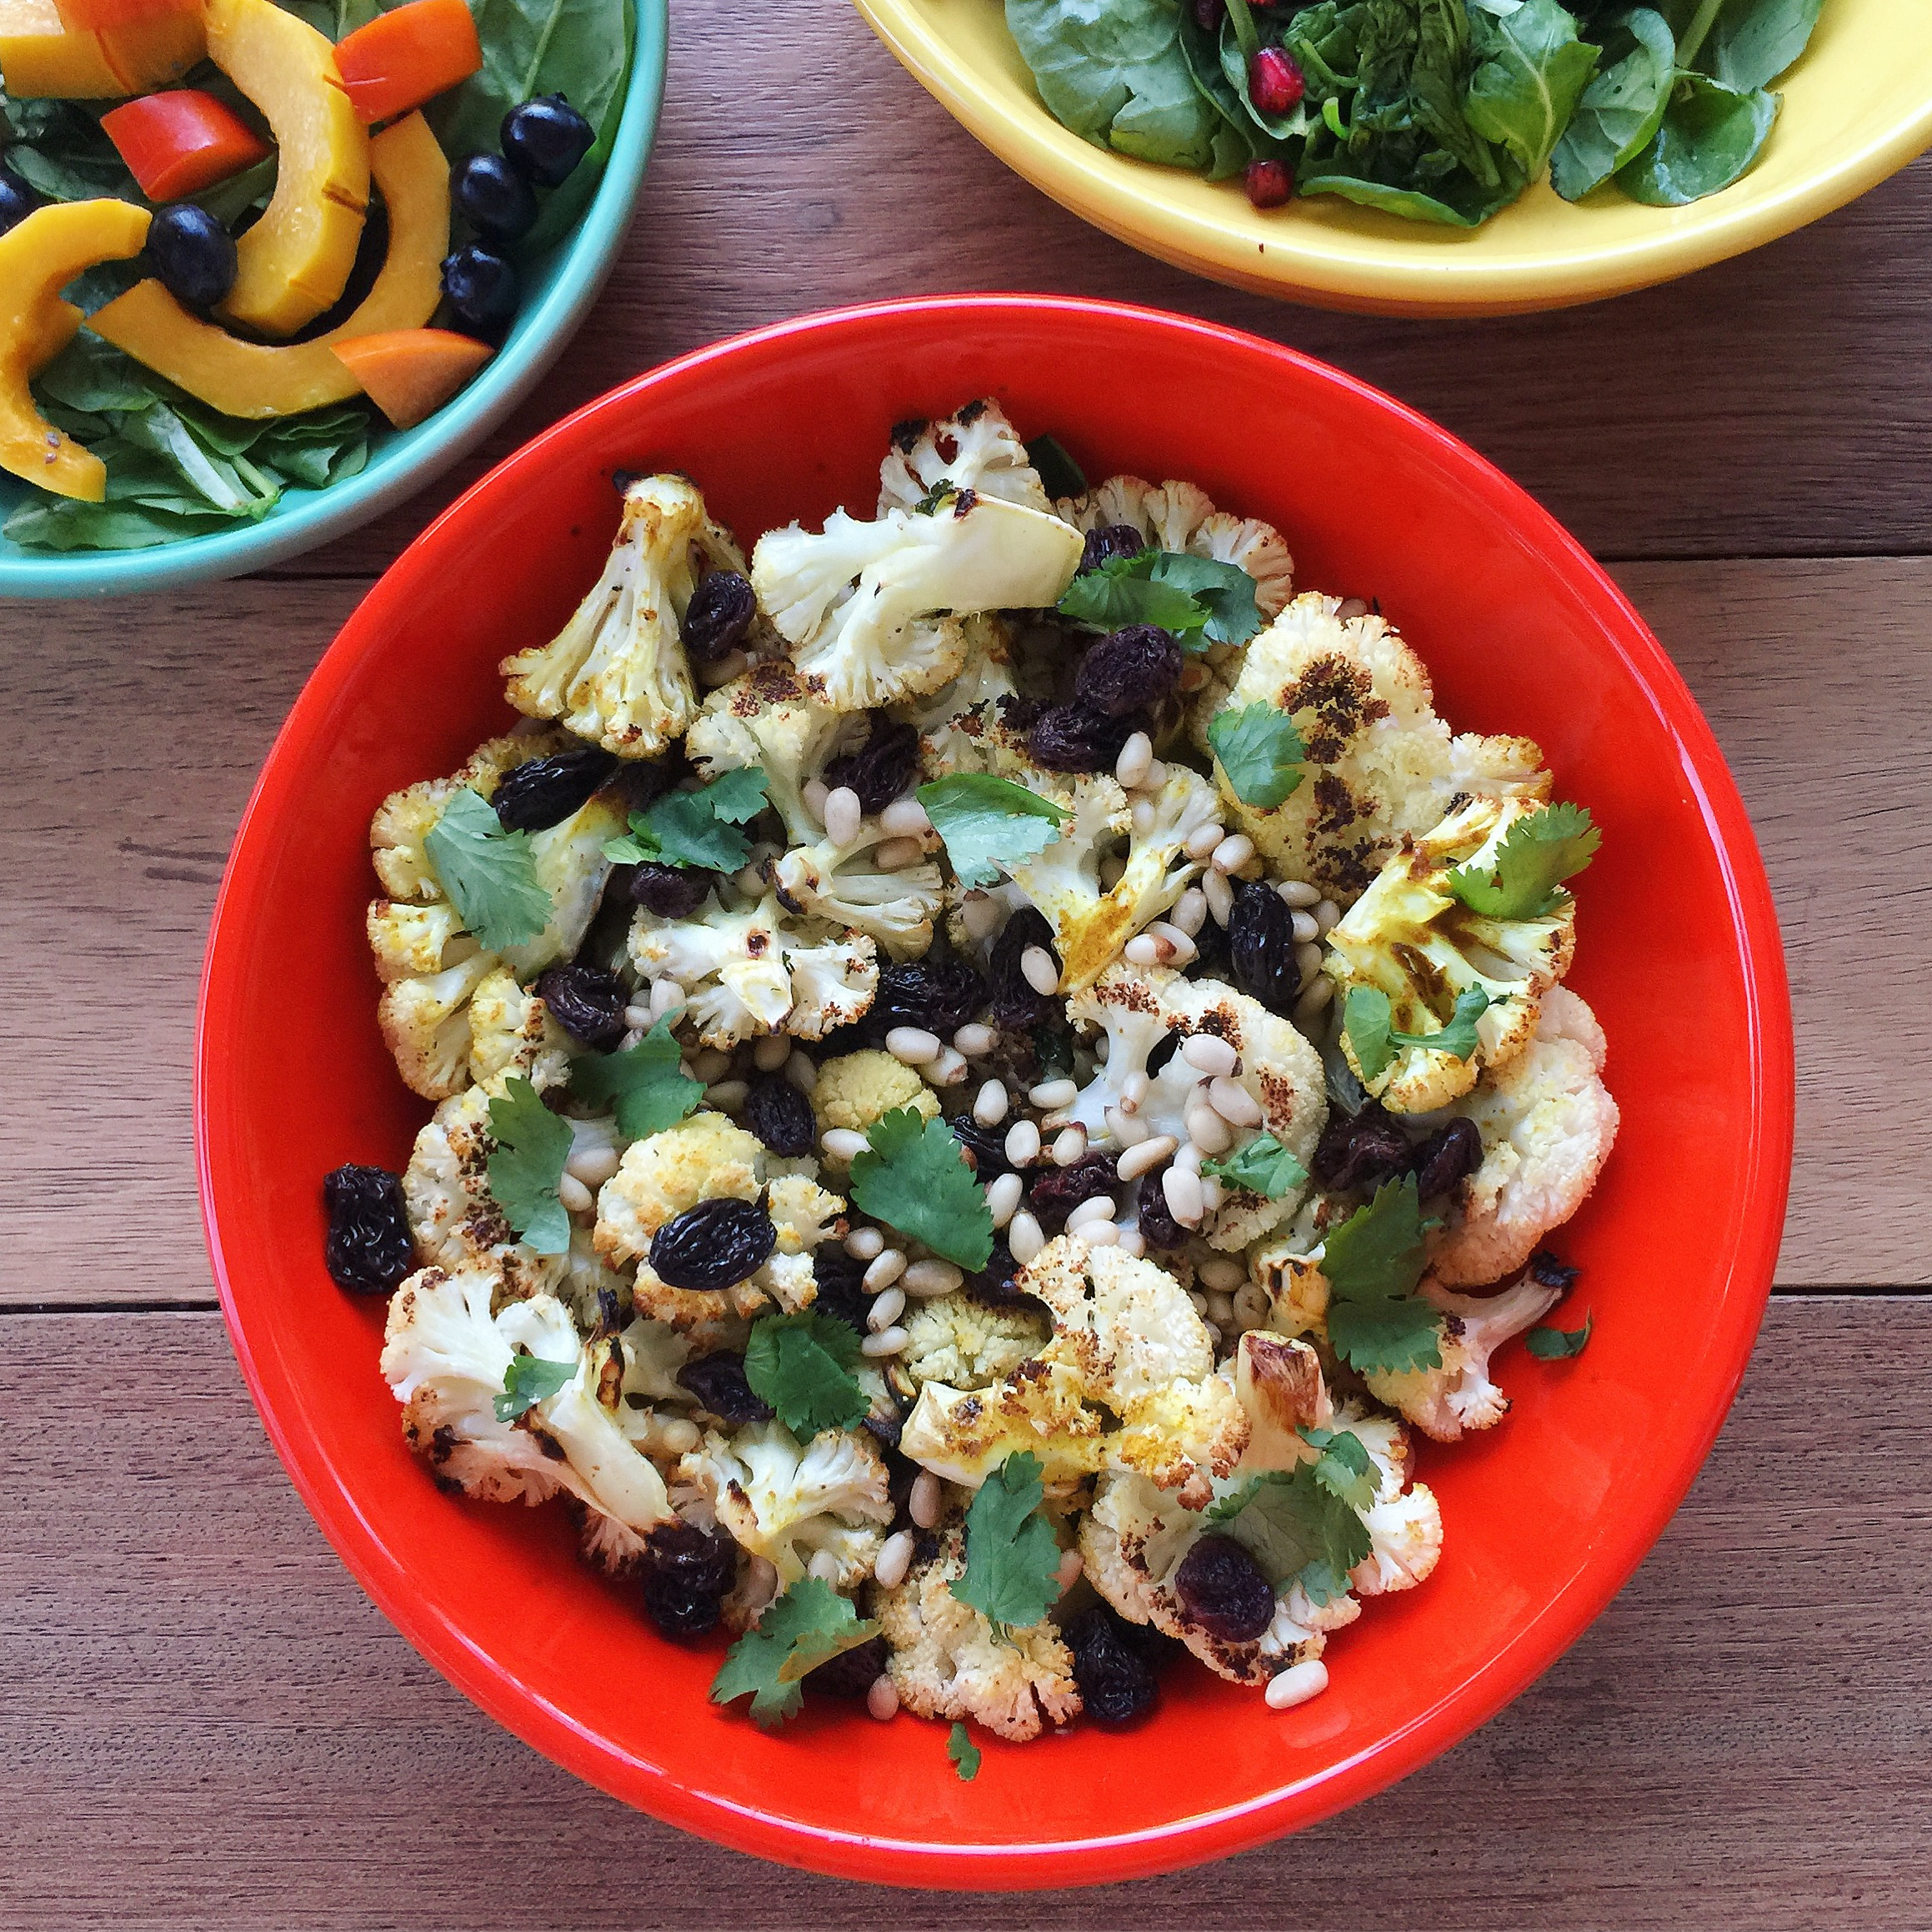 Roasted Spiced Cauliflower with Pine Nuts and Plump Raisins